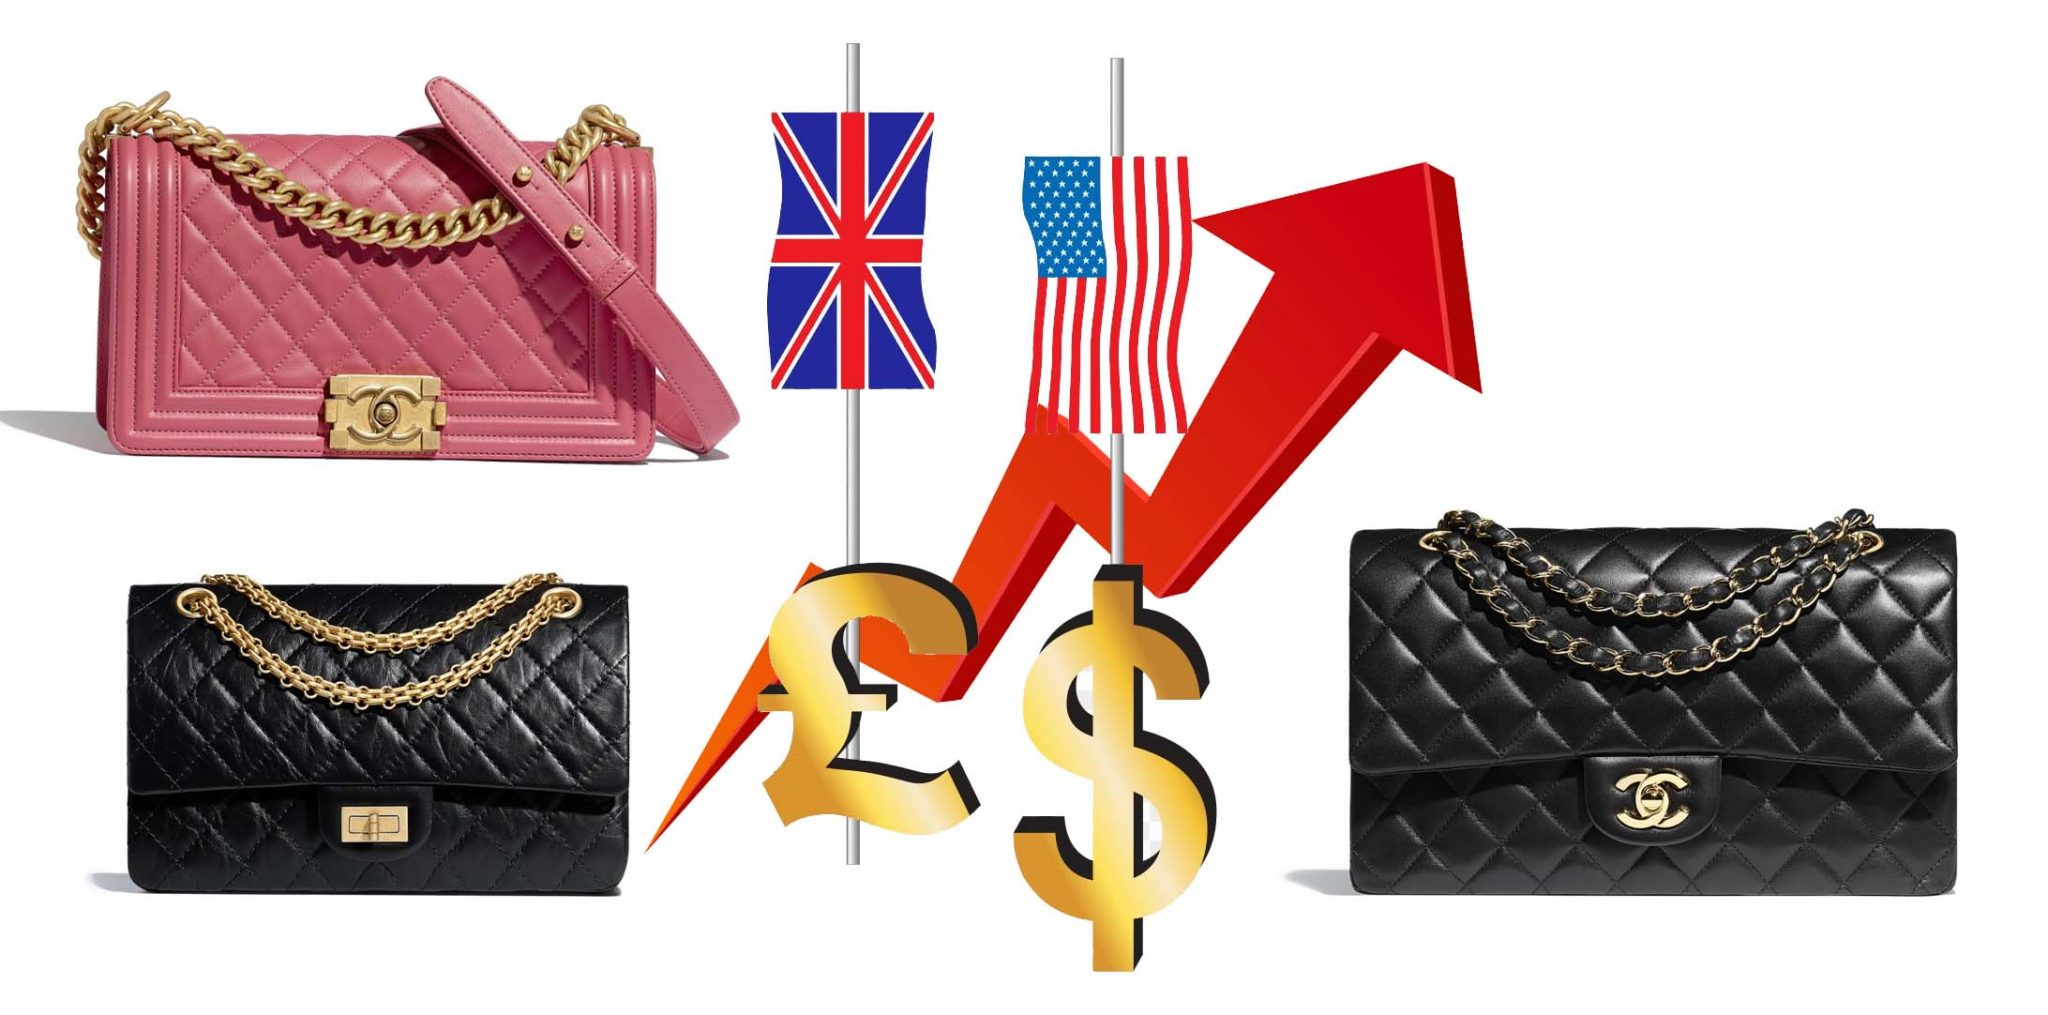 Chanel Bag Price Increase 2020 UK and US